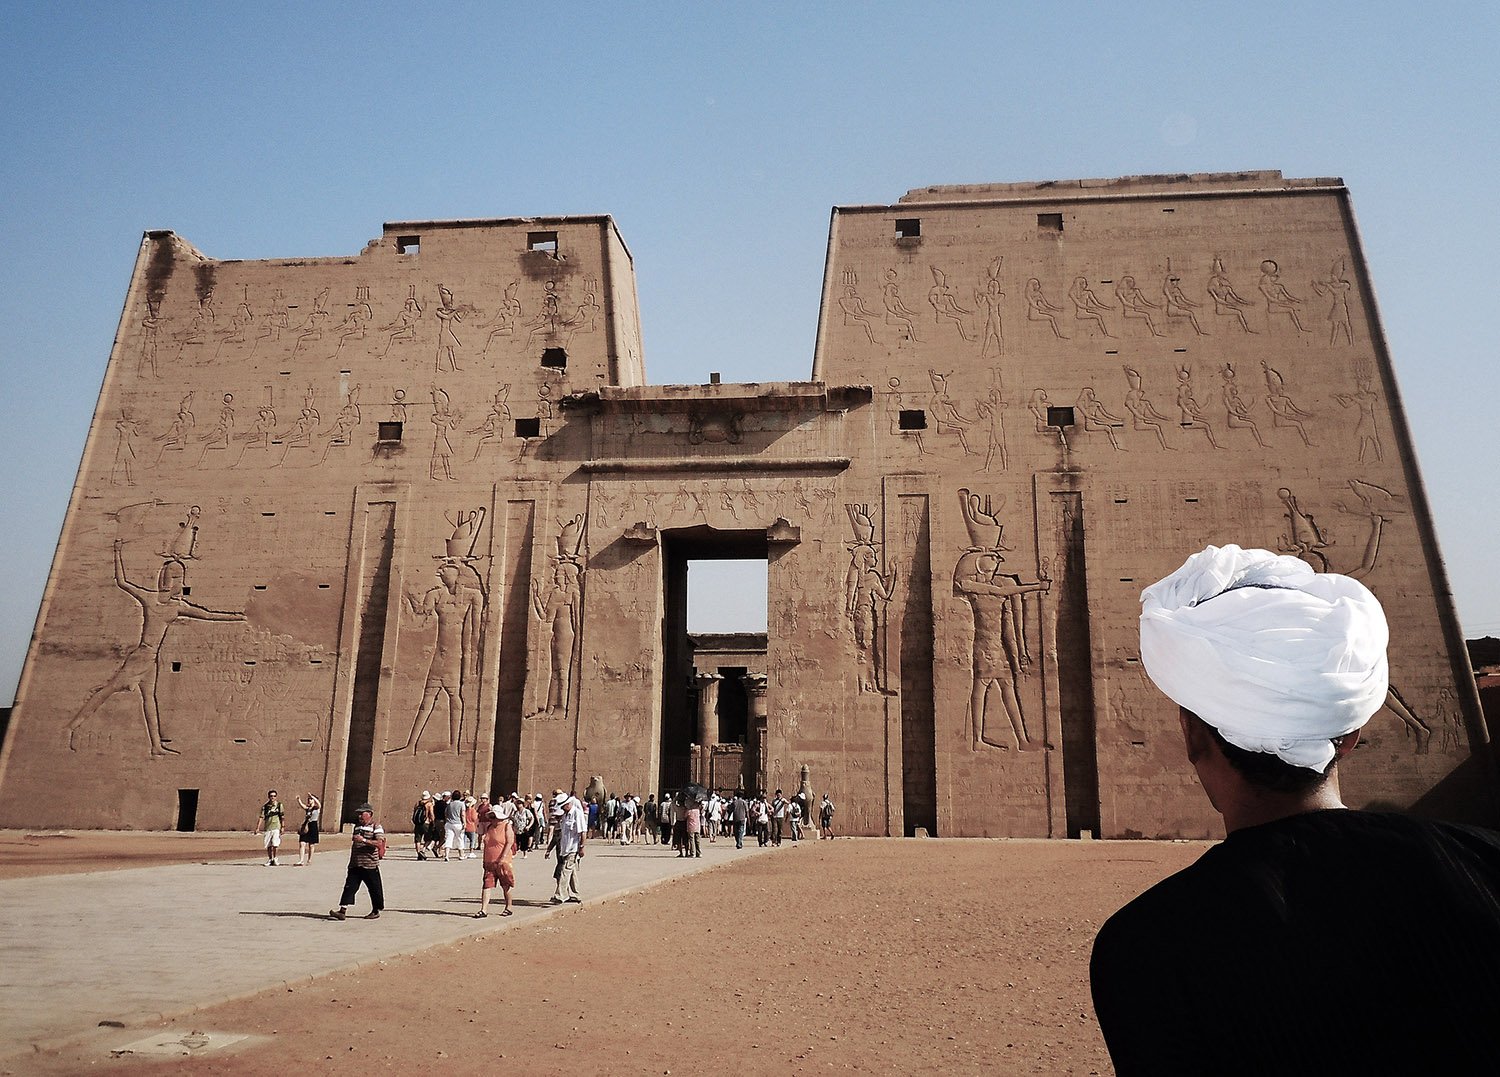 Local man in white turban in front of the Temple of Edfu